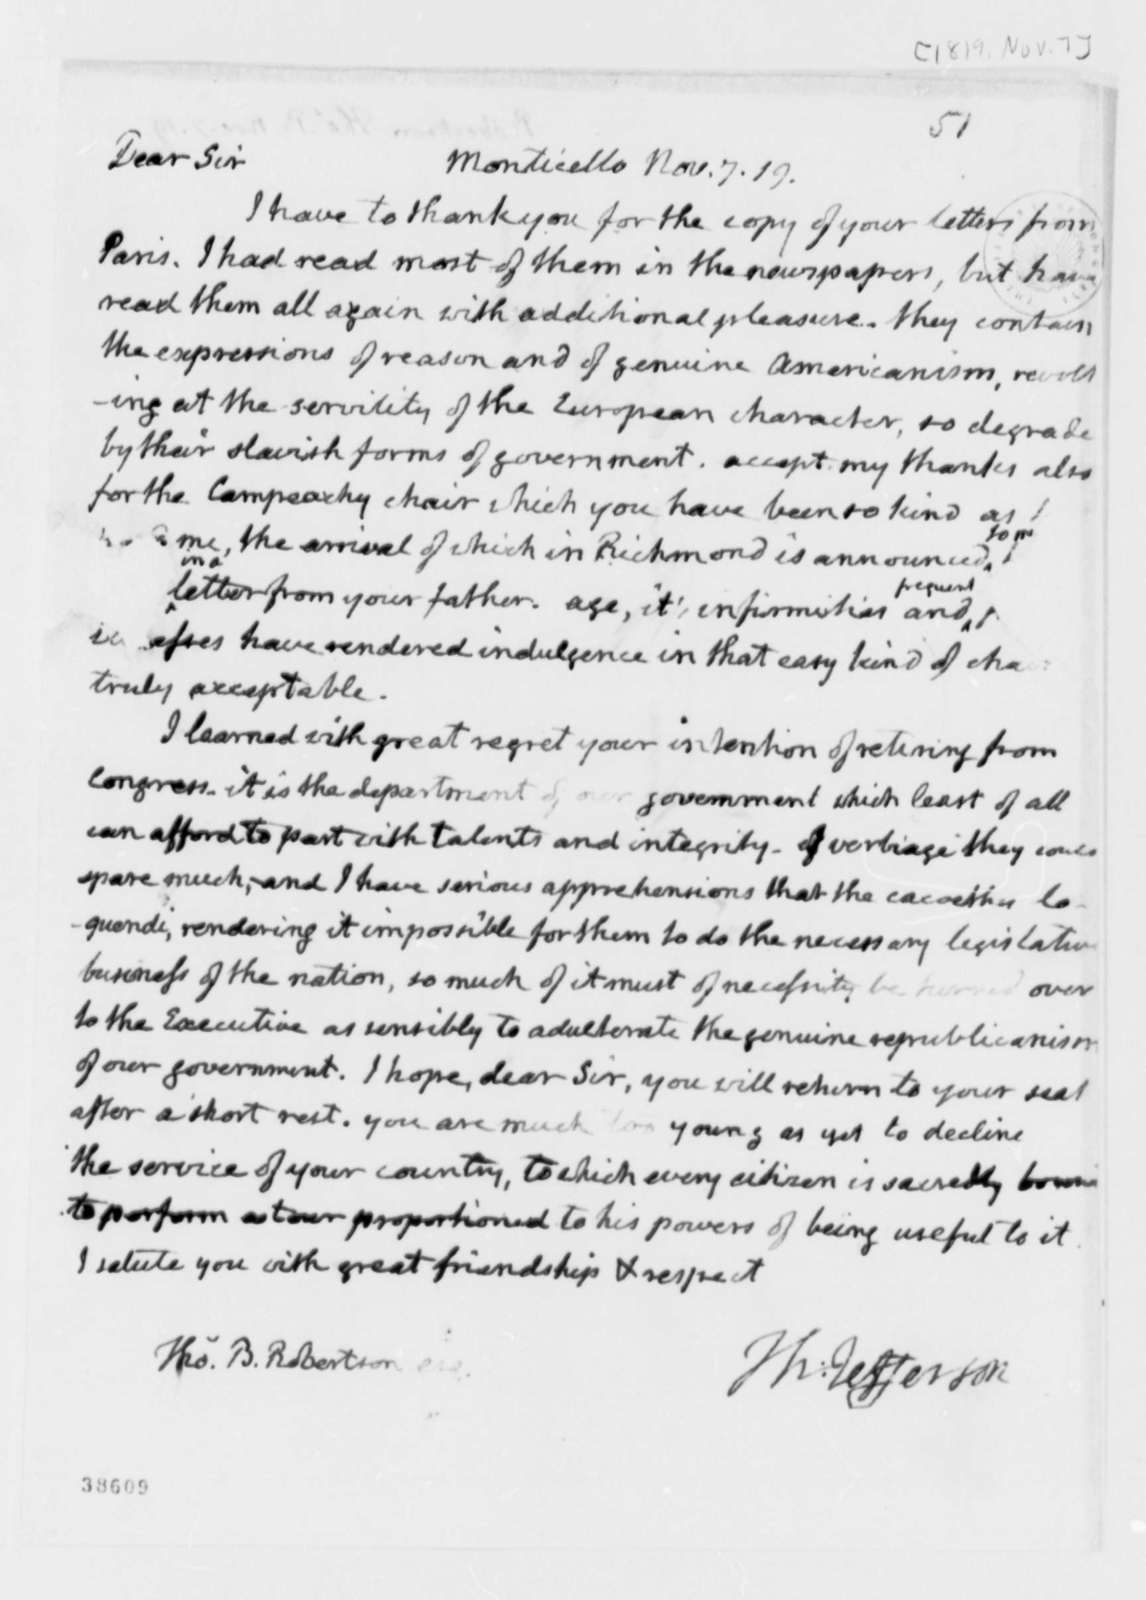 Thomas Jefferson to Thomas B. Robertson, November 7, 1819